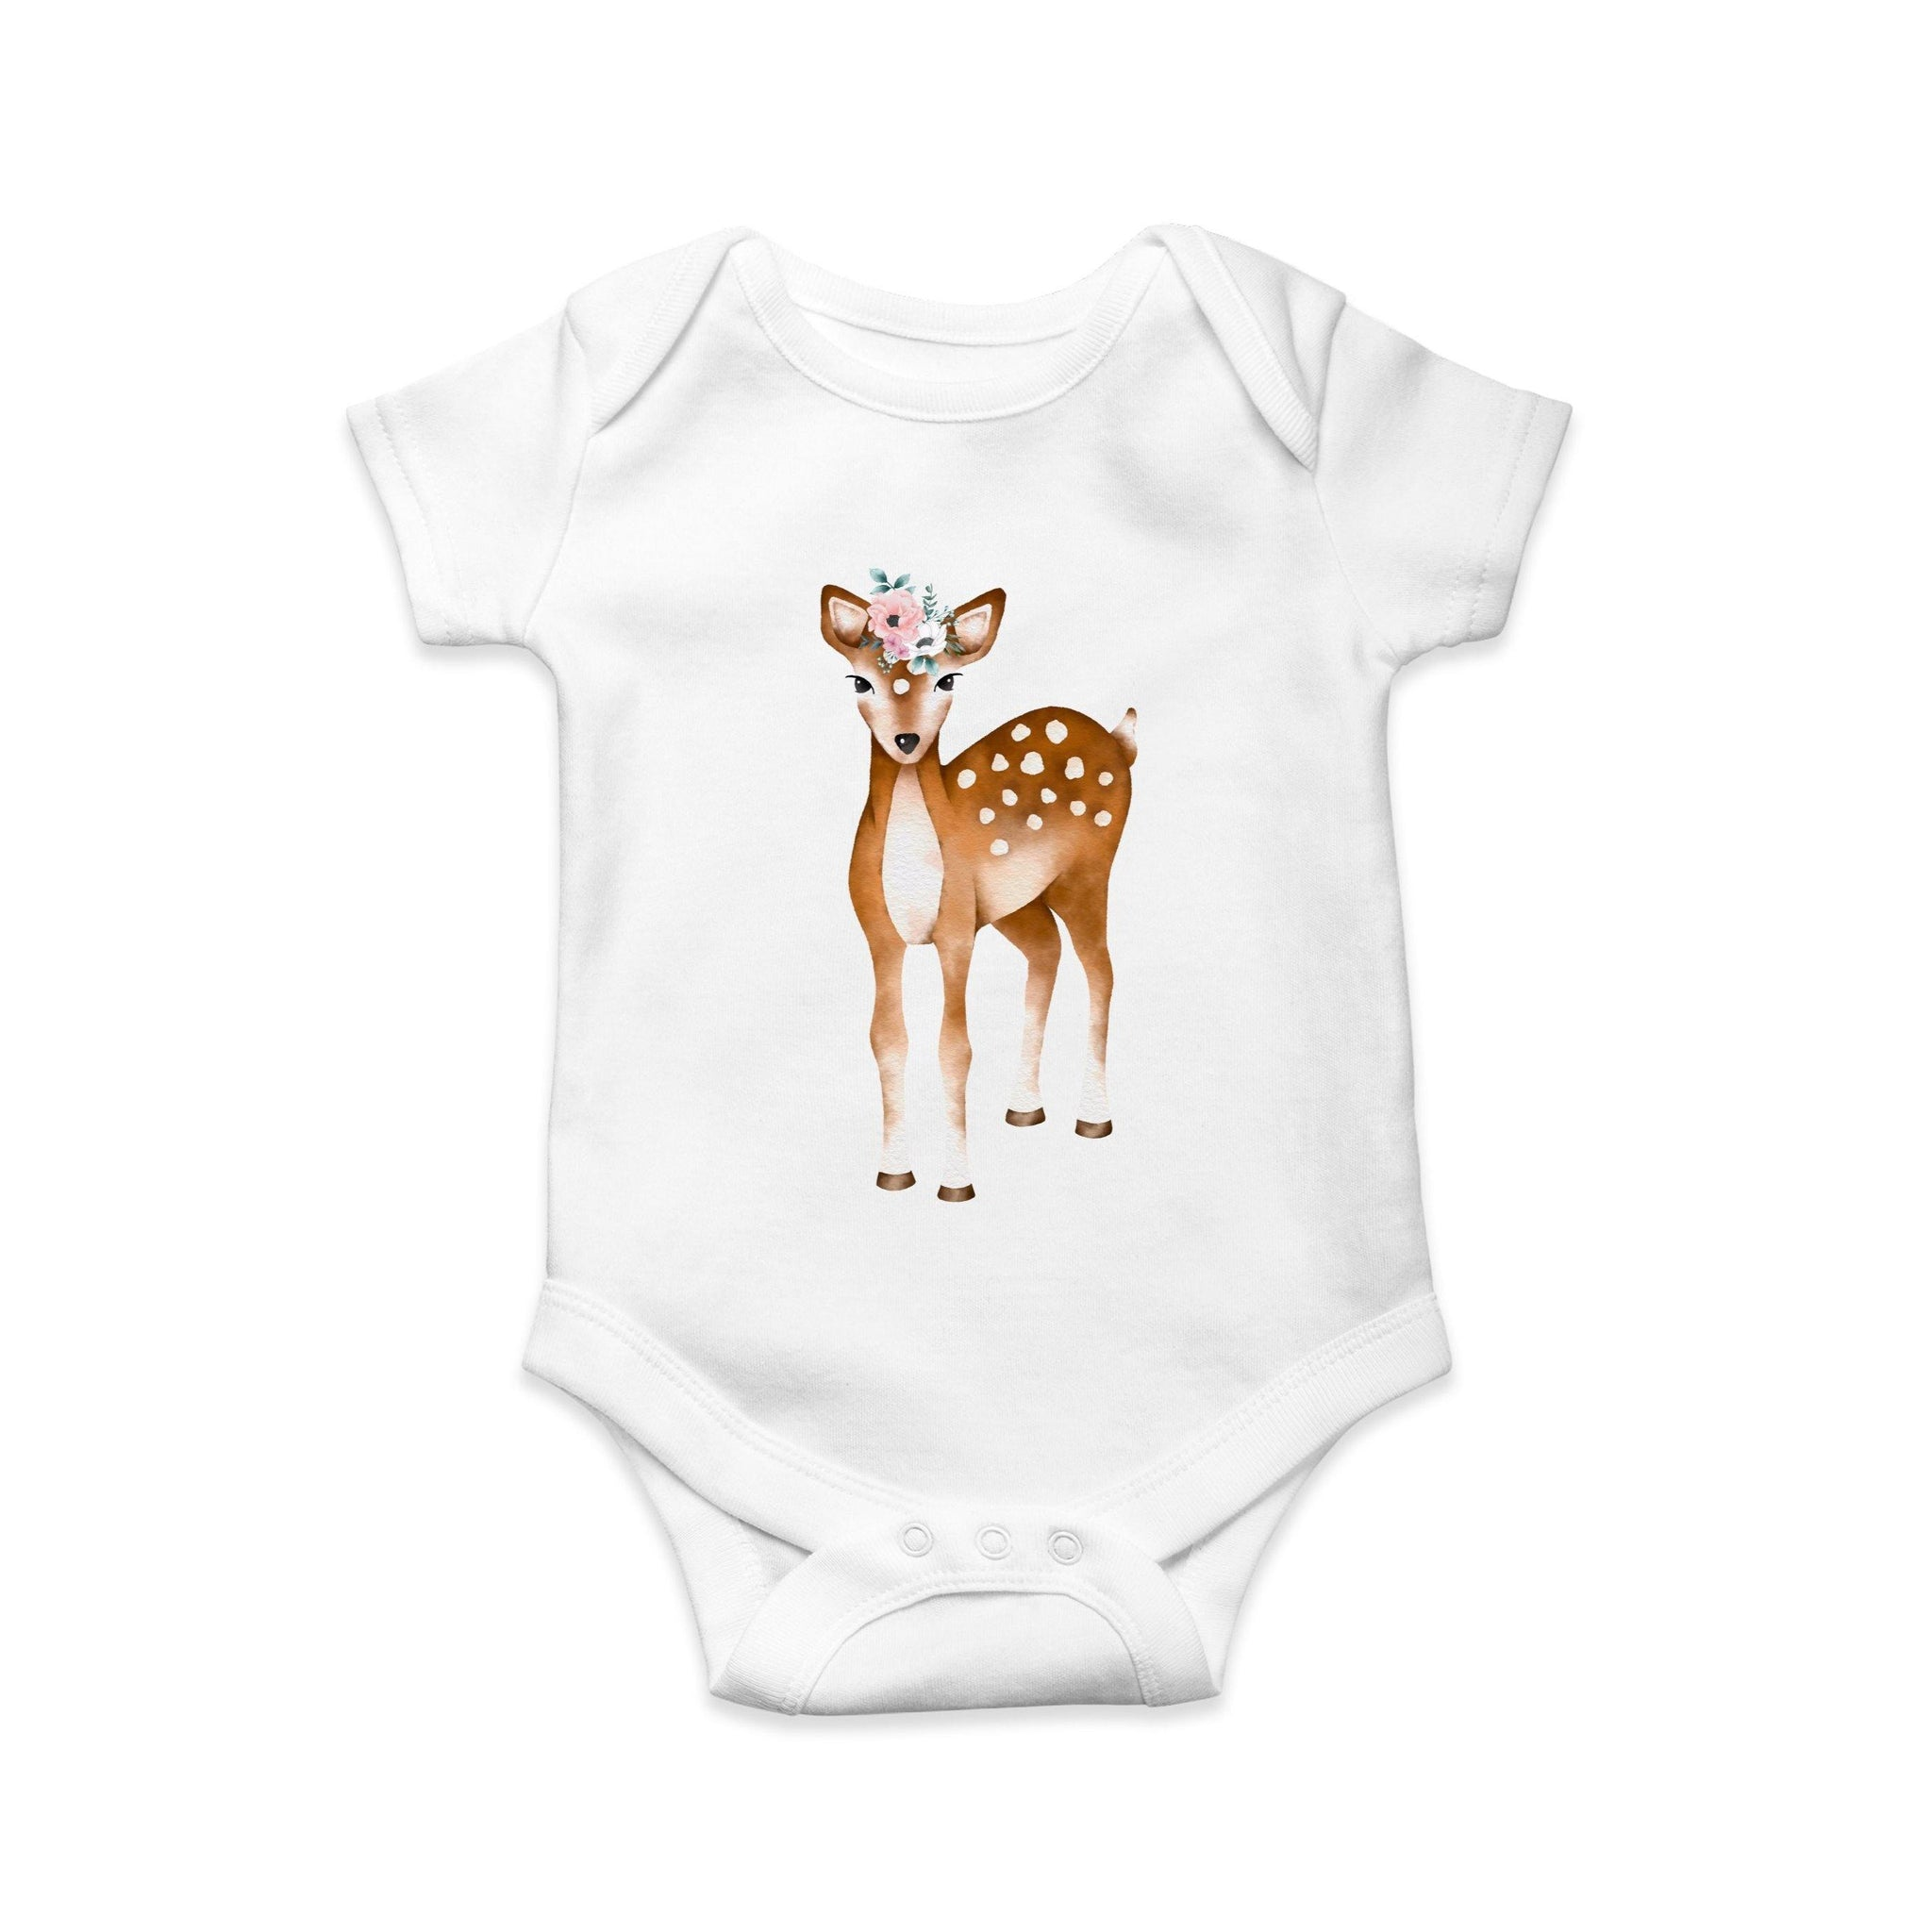 Standing deer and flower baby body suit - Sew Tilley